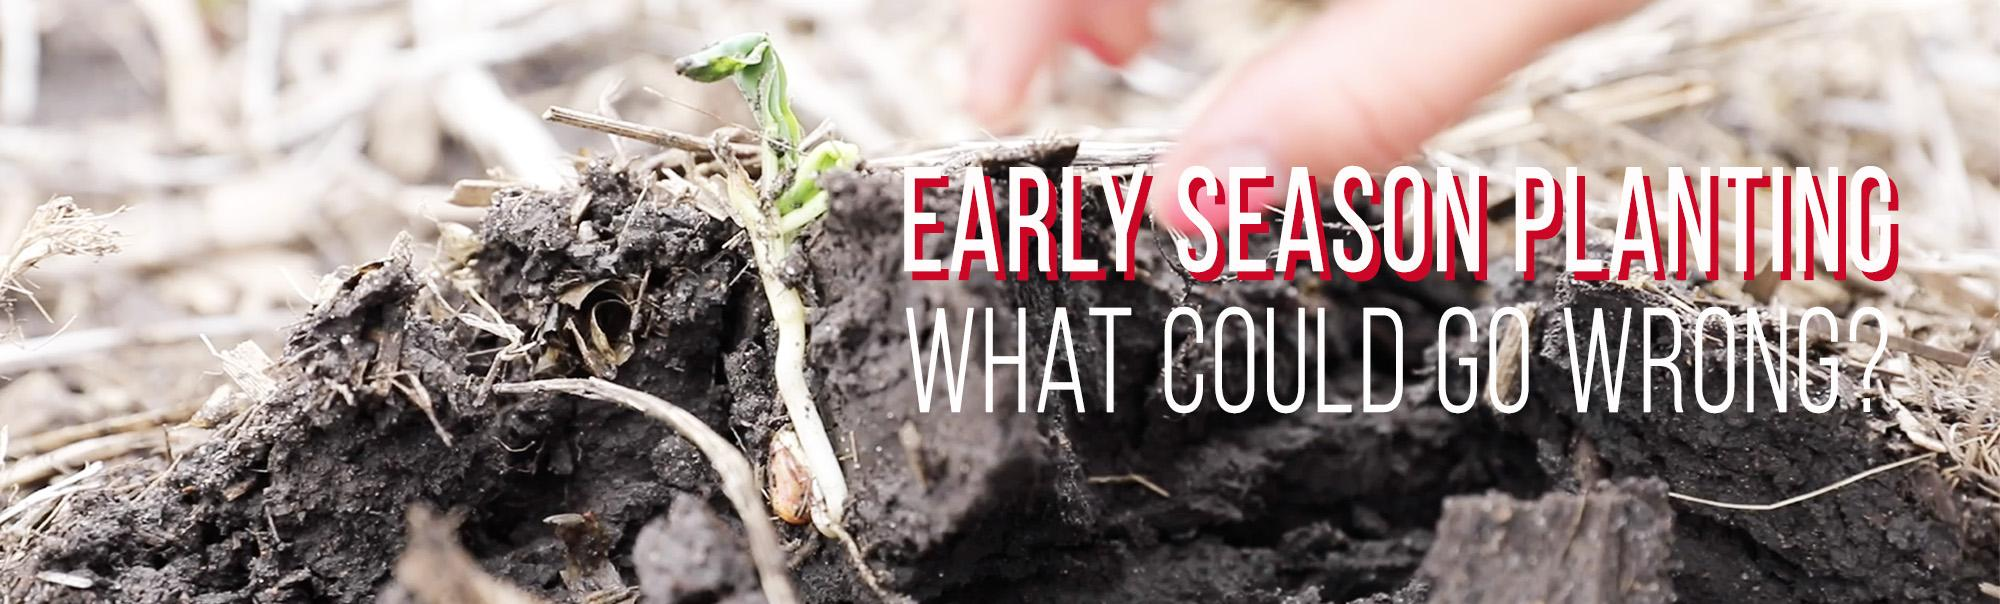 Early Season Planting (What Could Go Wrong?)